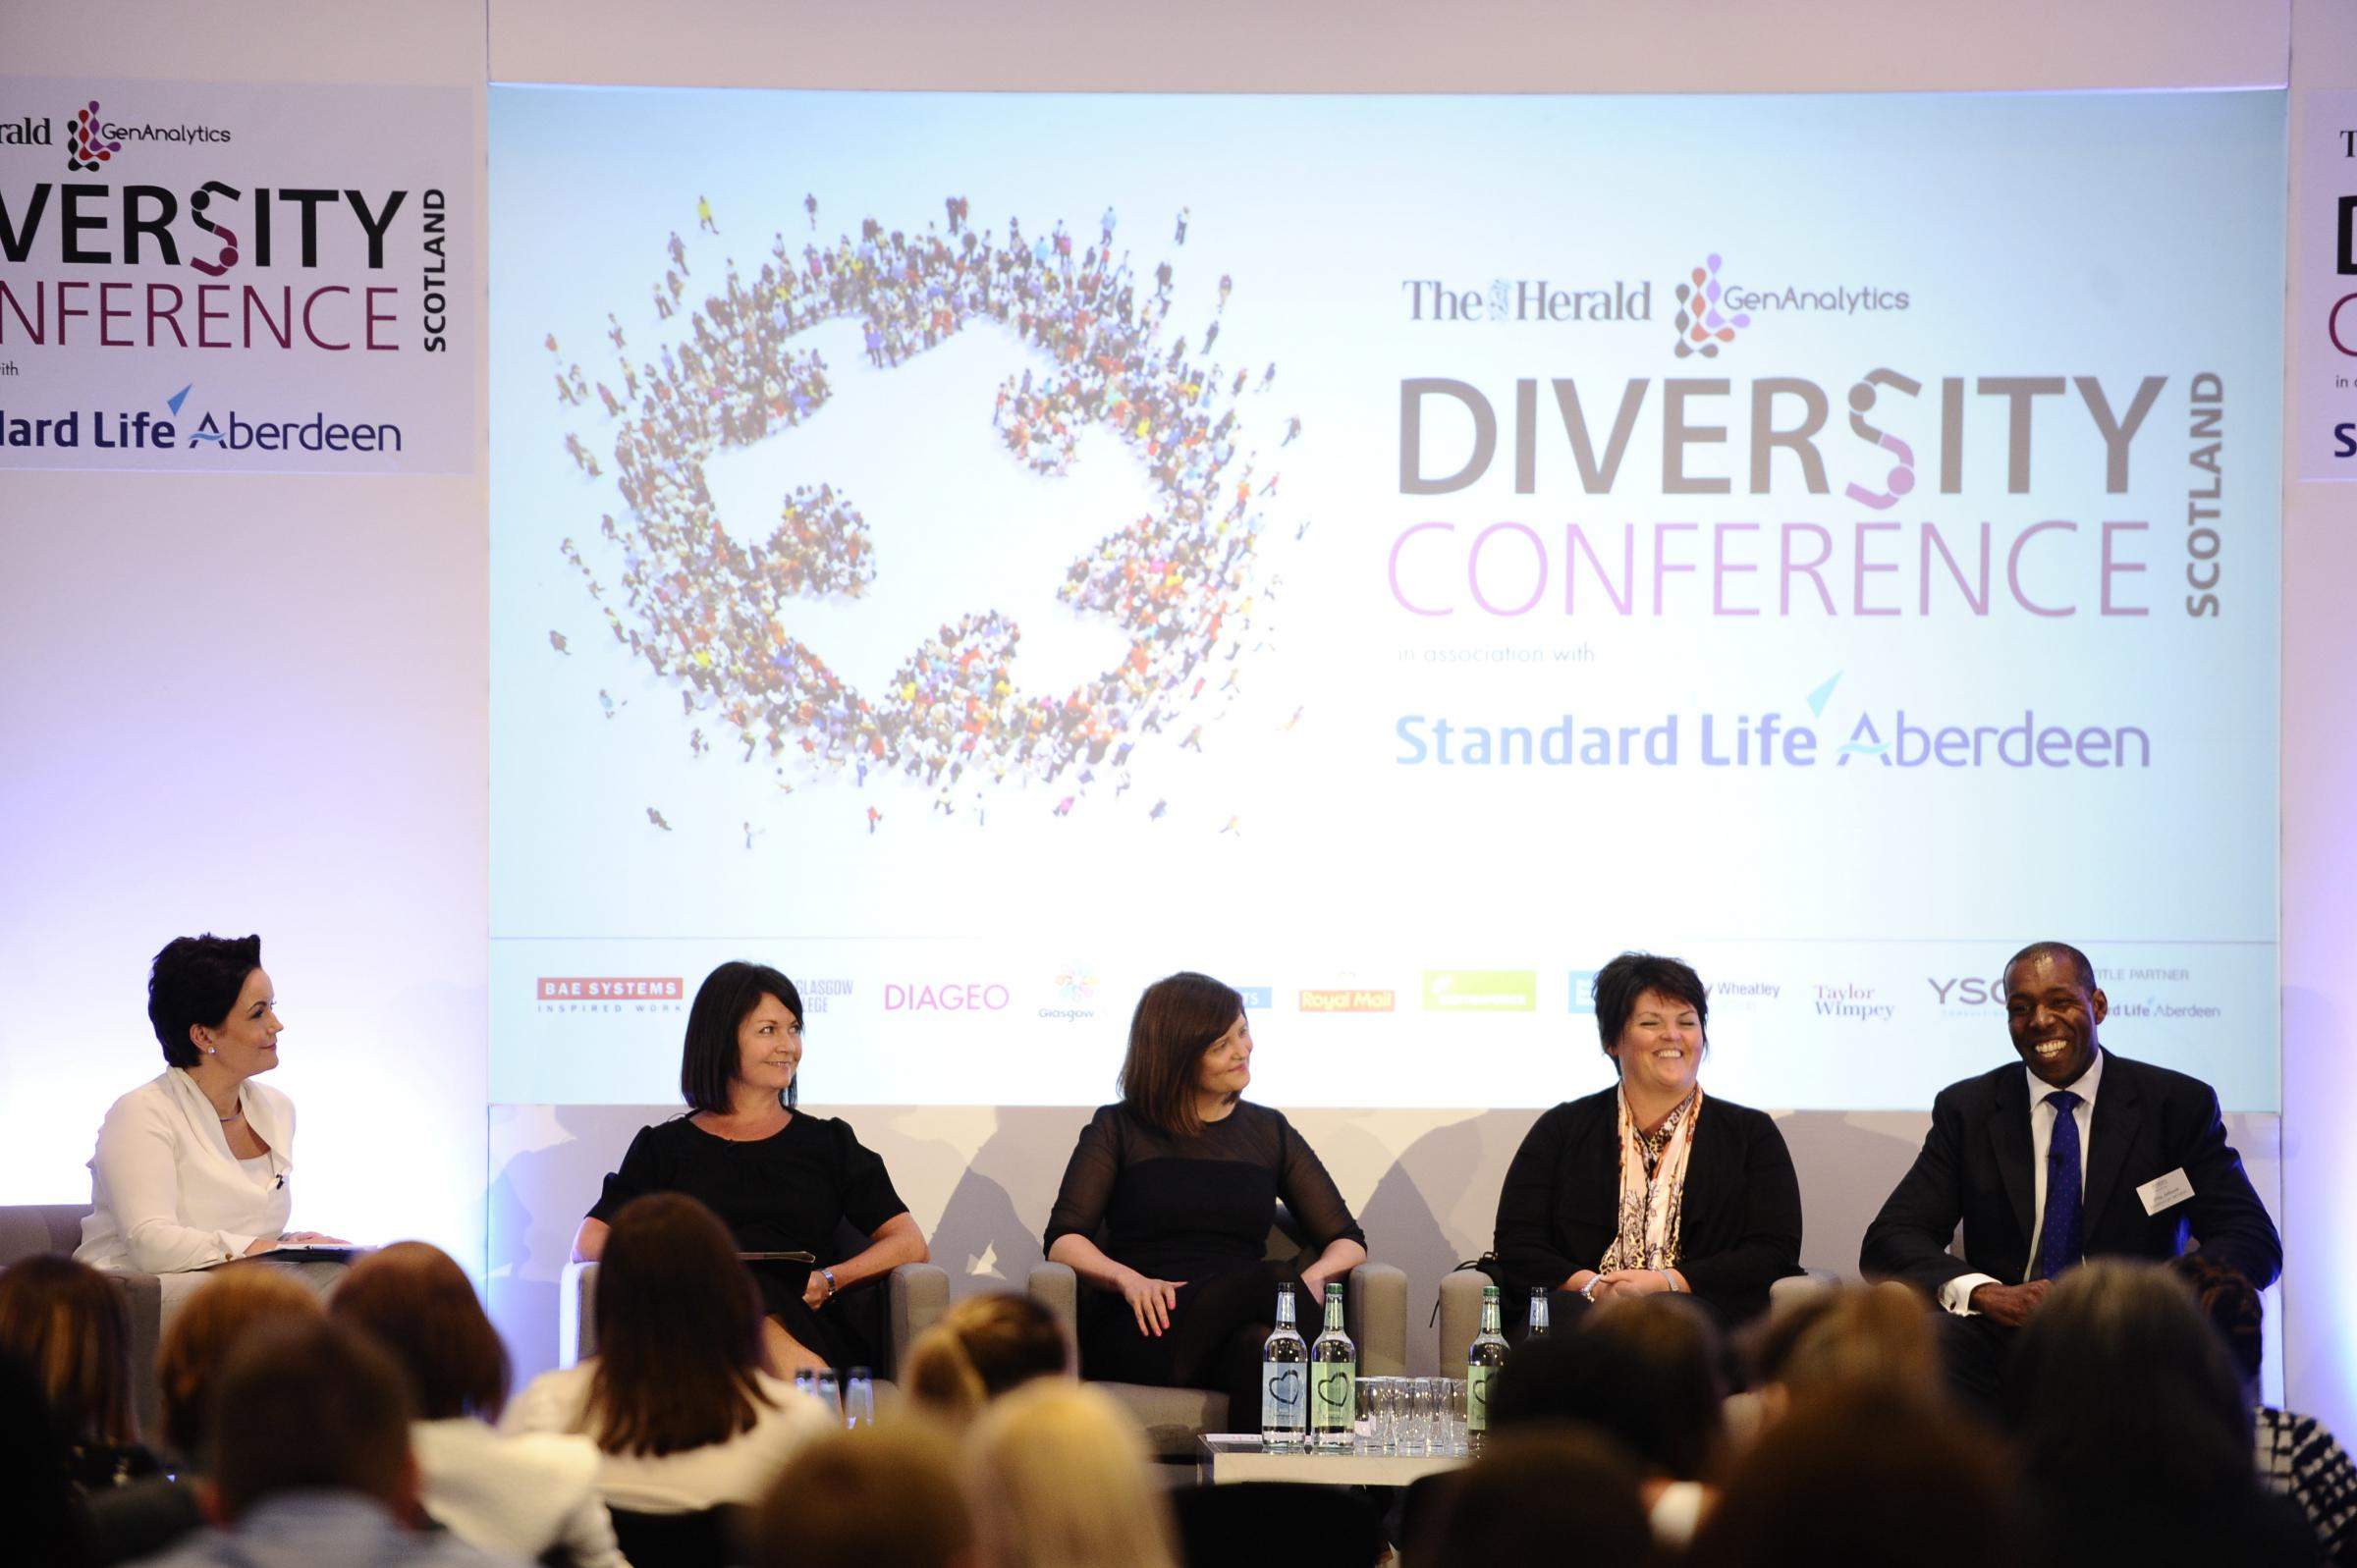 The Diversity Conference is now in its third year and will be taking place on May 7 at Glasgow's Radisson Blu.